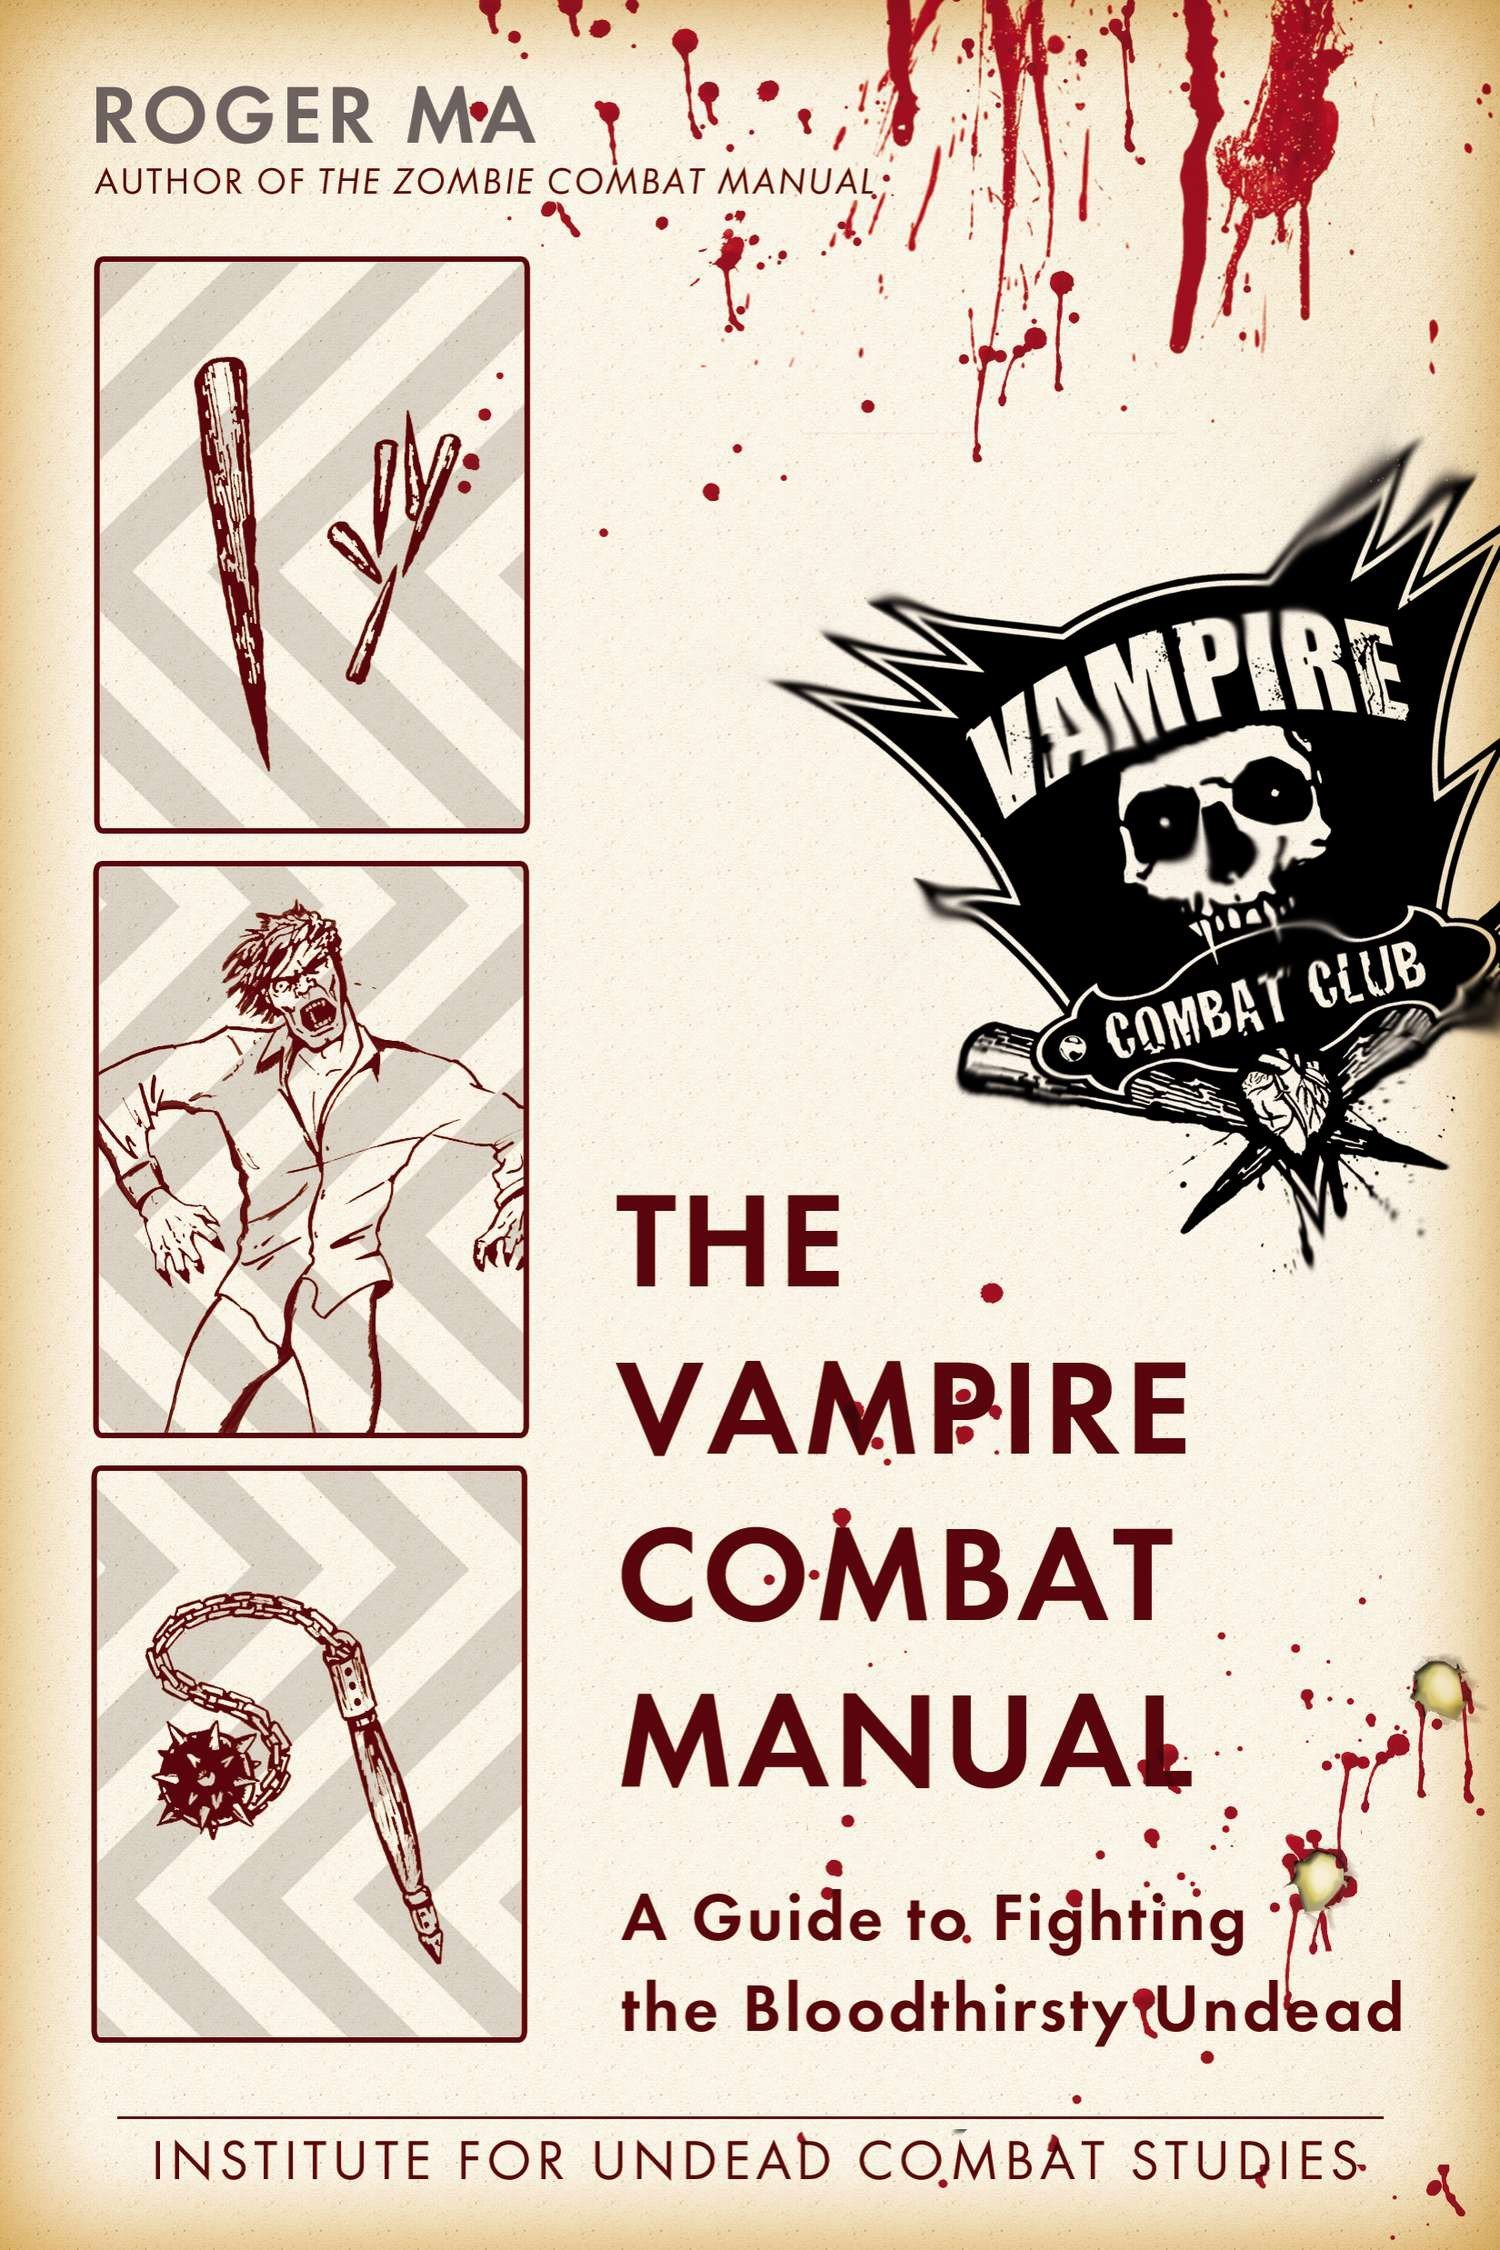 The Vampire Combat Manual: A Guide to Fighting the